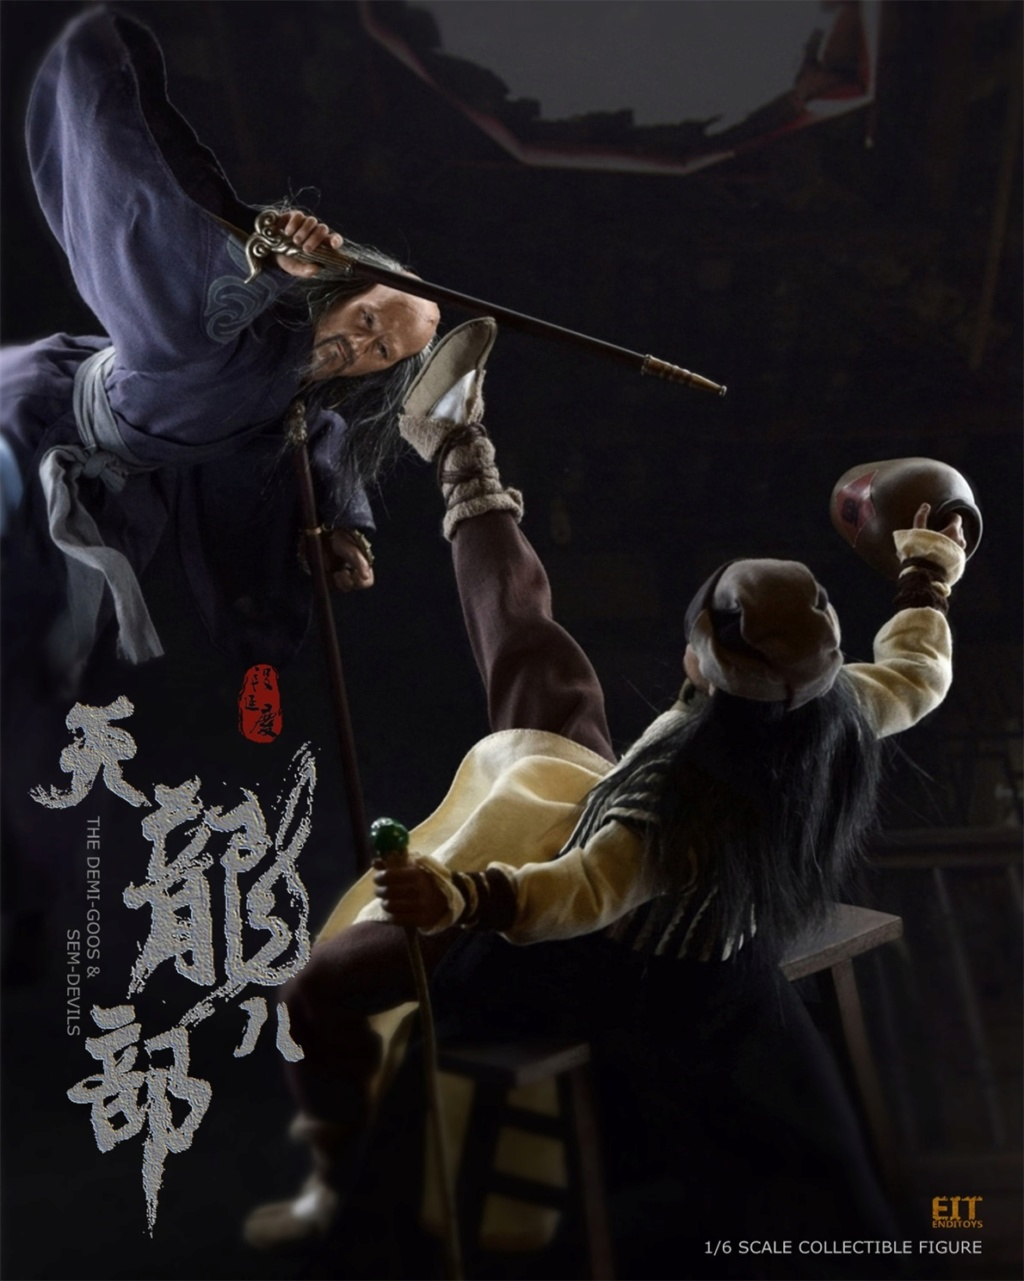 EndIToys - NEW PRODUCT: [EIT] End I Toys New: 1/6 Tianlong Babu - Duan Yanqing Movable (EIT1809) 1350